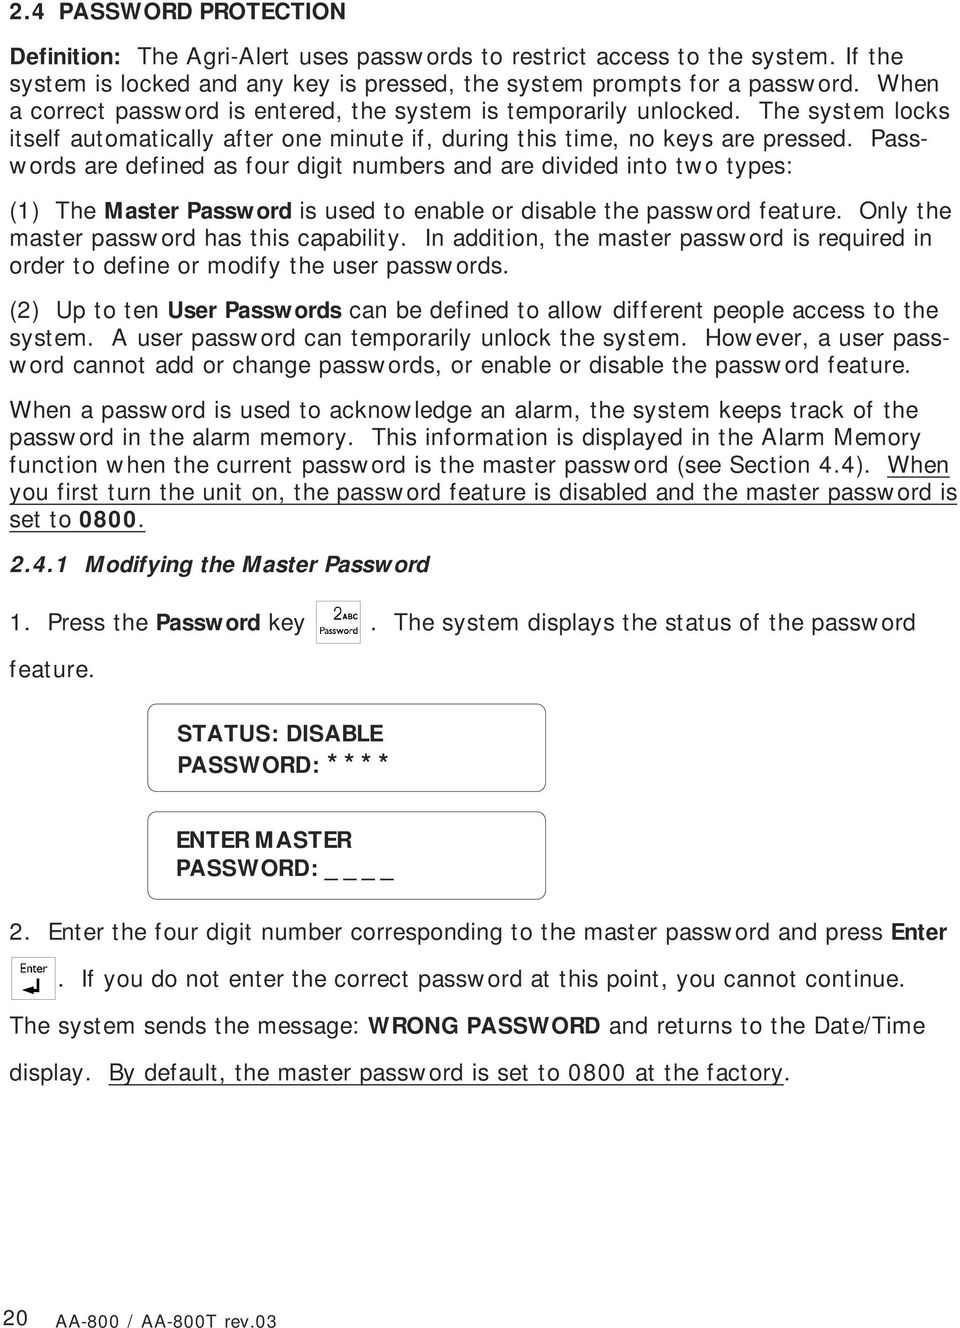 Passwords are defined as four digit numbers and are divided into two types: (1) The Master Password is used to enable or disable the password feature. Only the master password has this capability.